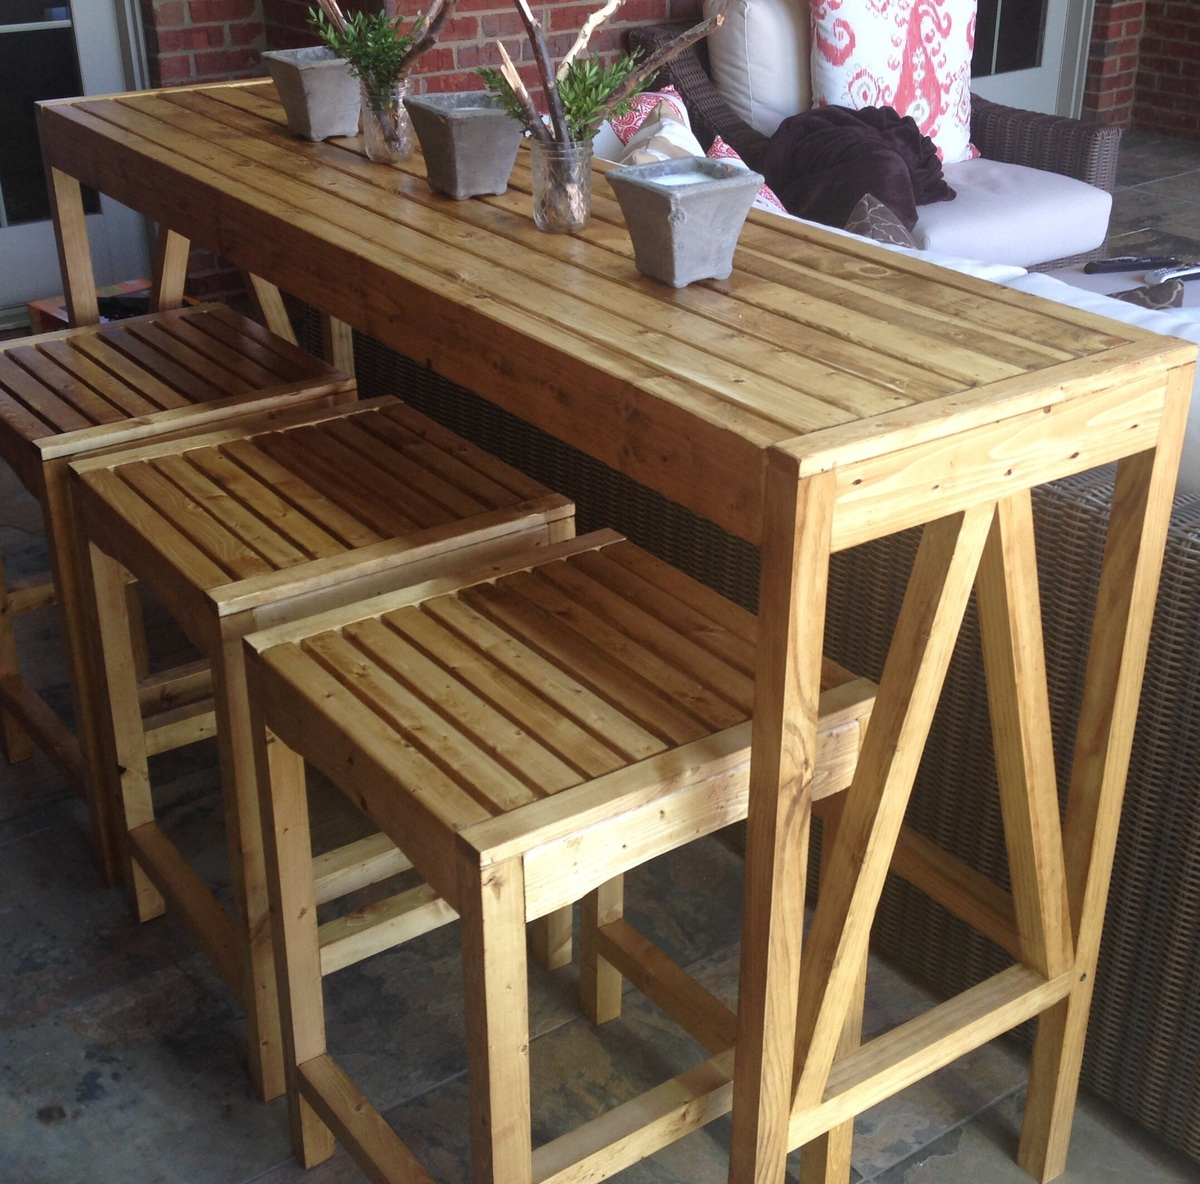 Ana white sutton custom outdoor bar stools diy projects for Wooden bar design